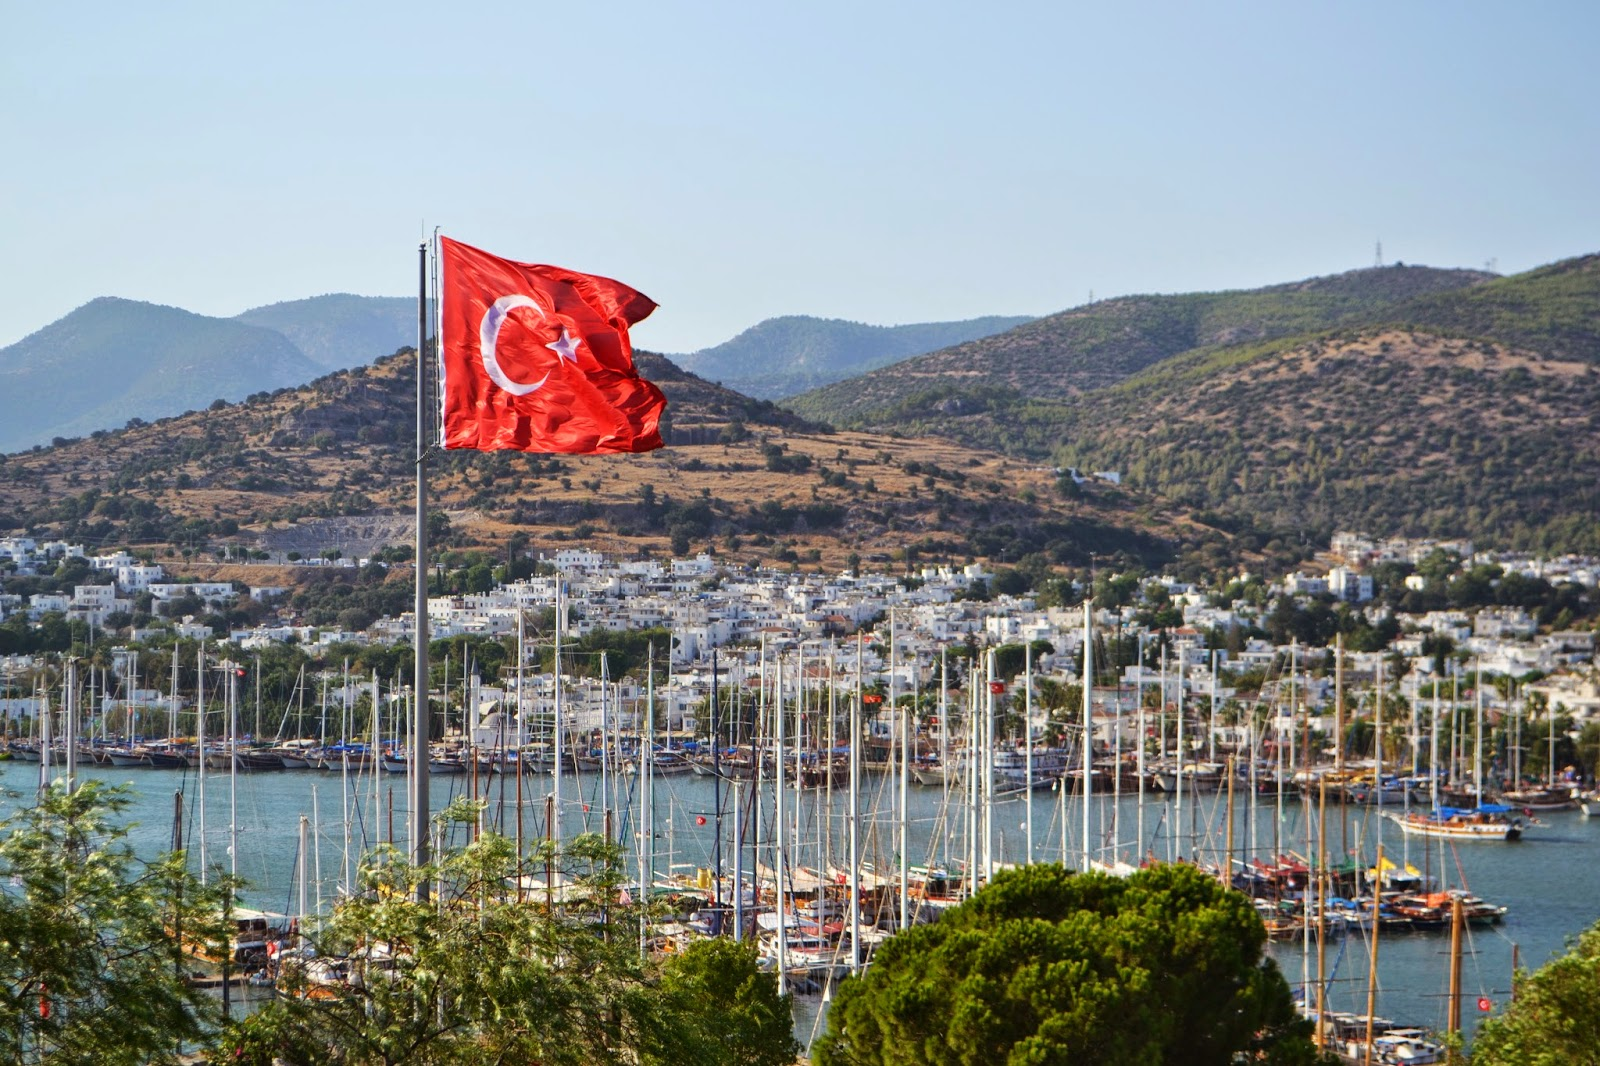 a Turkish flag can be seen in the foreground and the harbour full of boat can be seen bind this. a hill of white washed buildings can be seen in the background